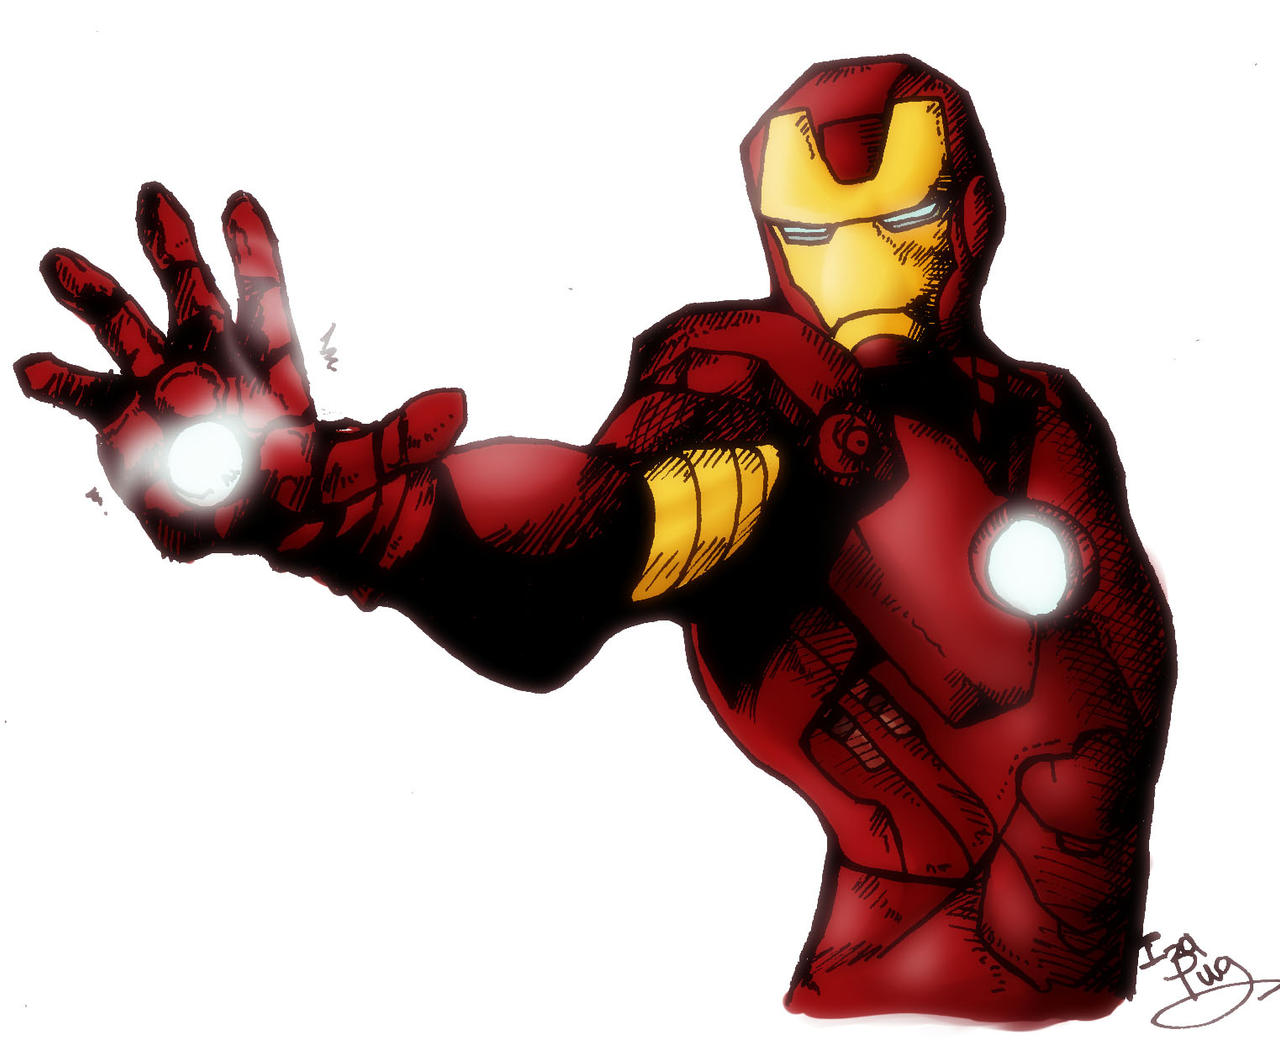 Yes, I'm IRONMAN by IzaPug on DeviantArt